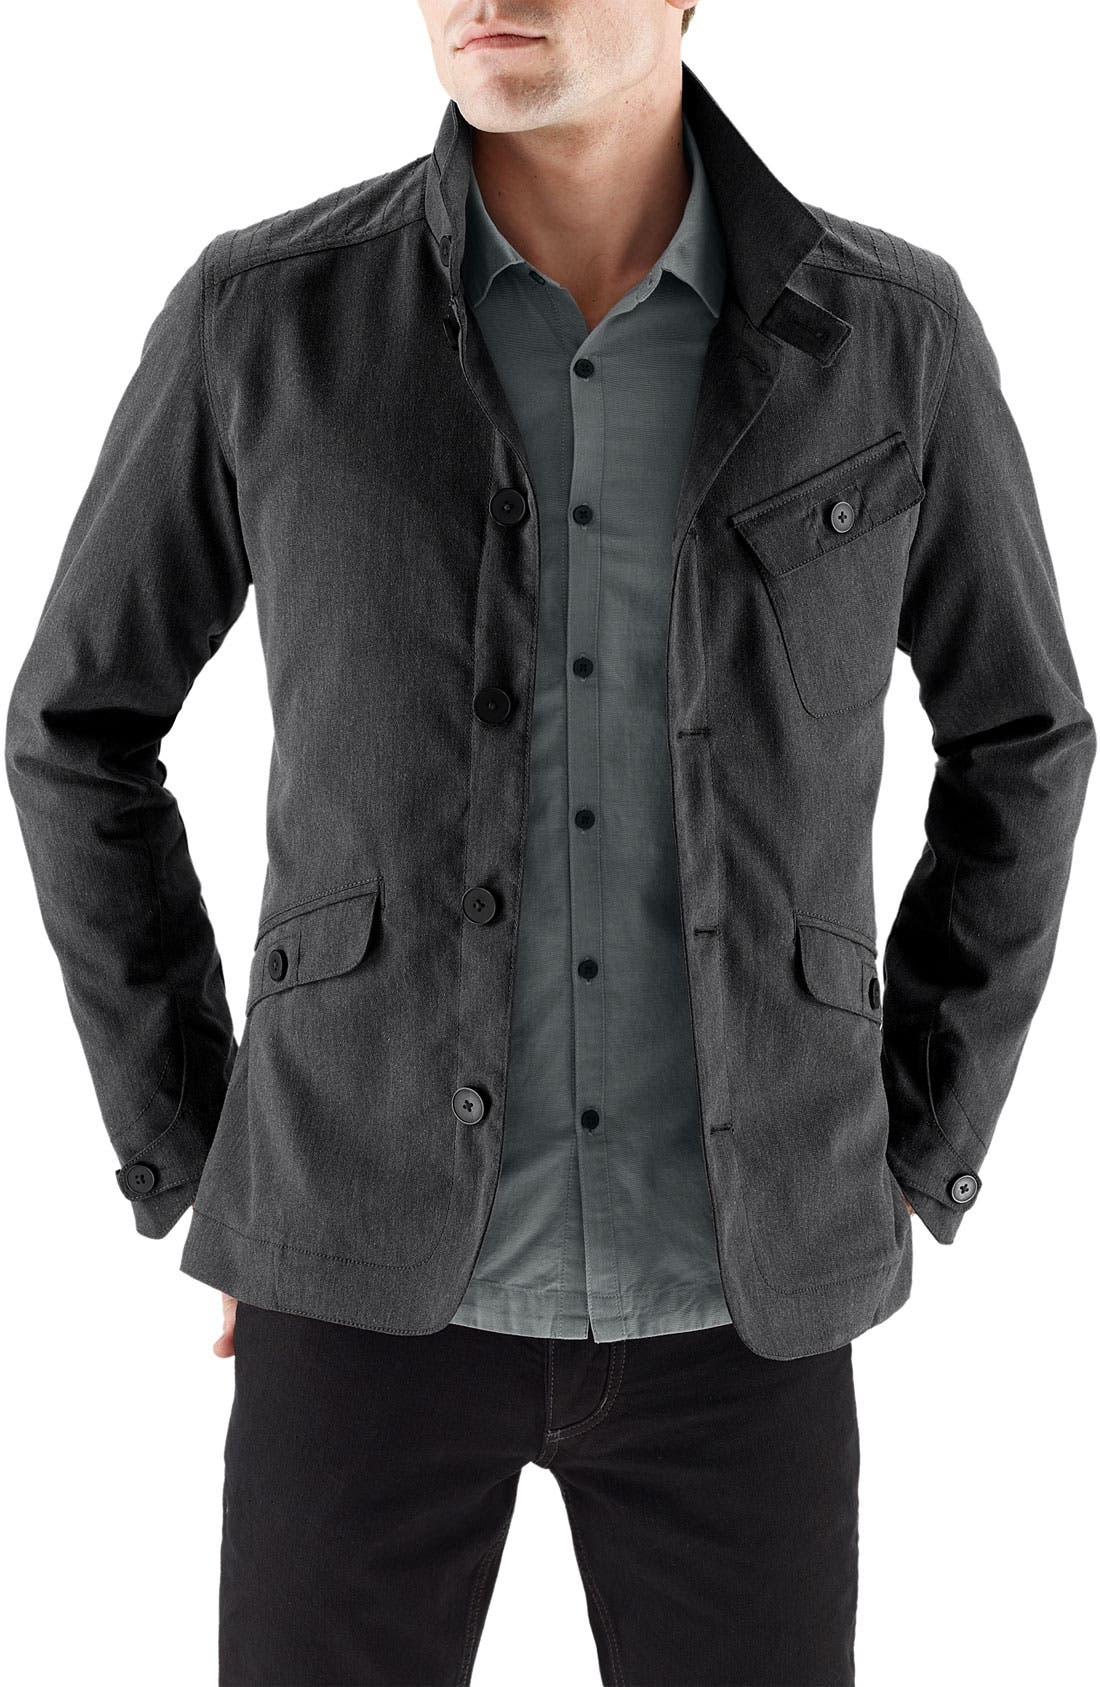 Alternate Image 1 Selected - Nau 'Vice' Water Repellent Blazer